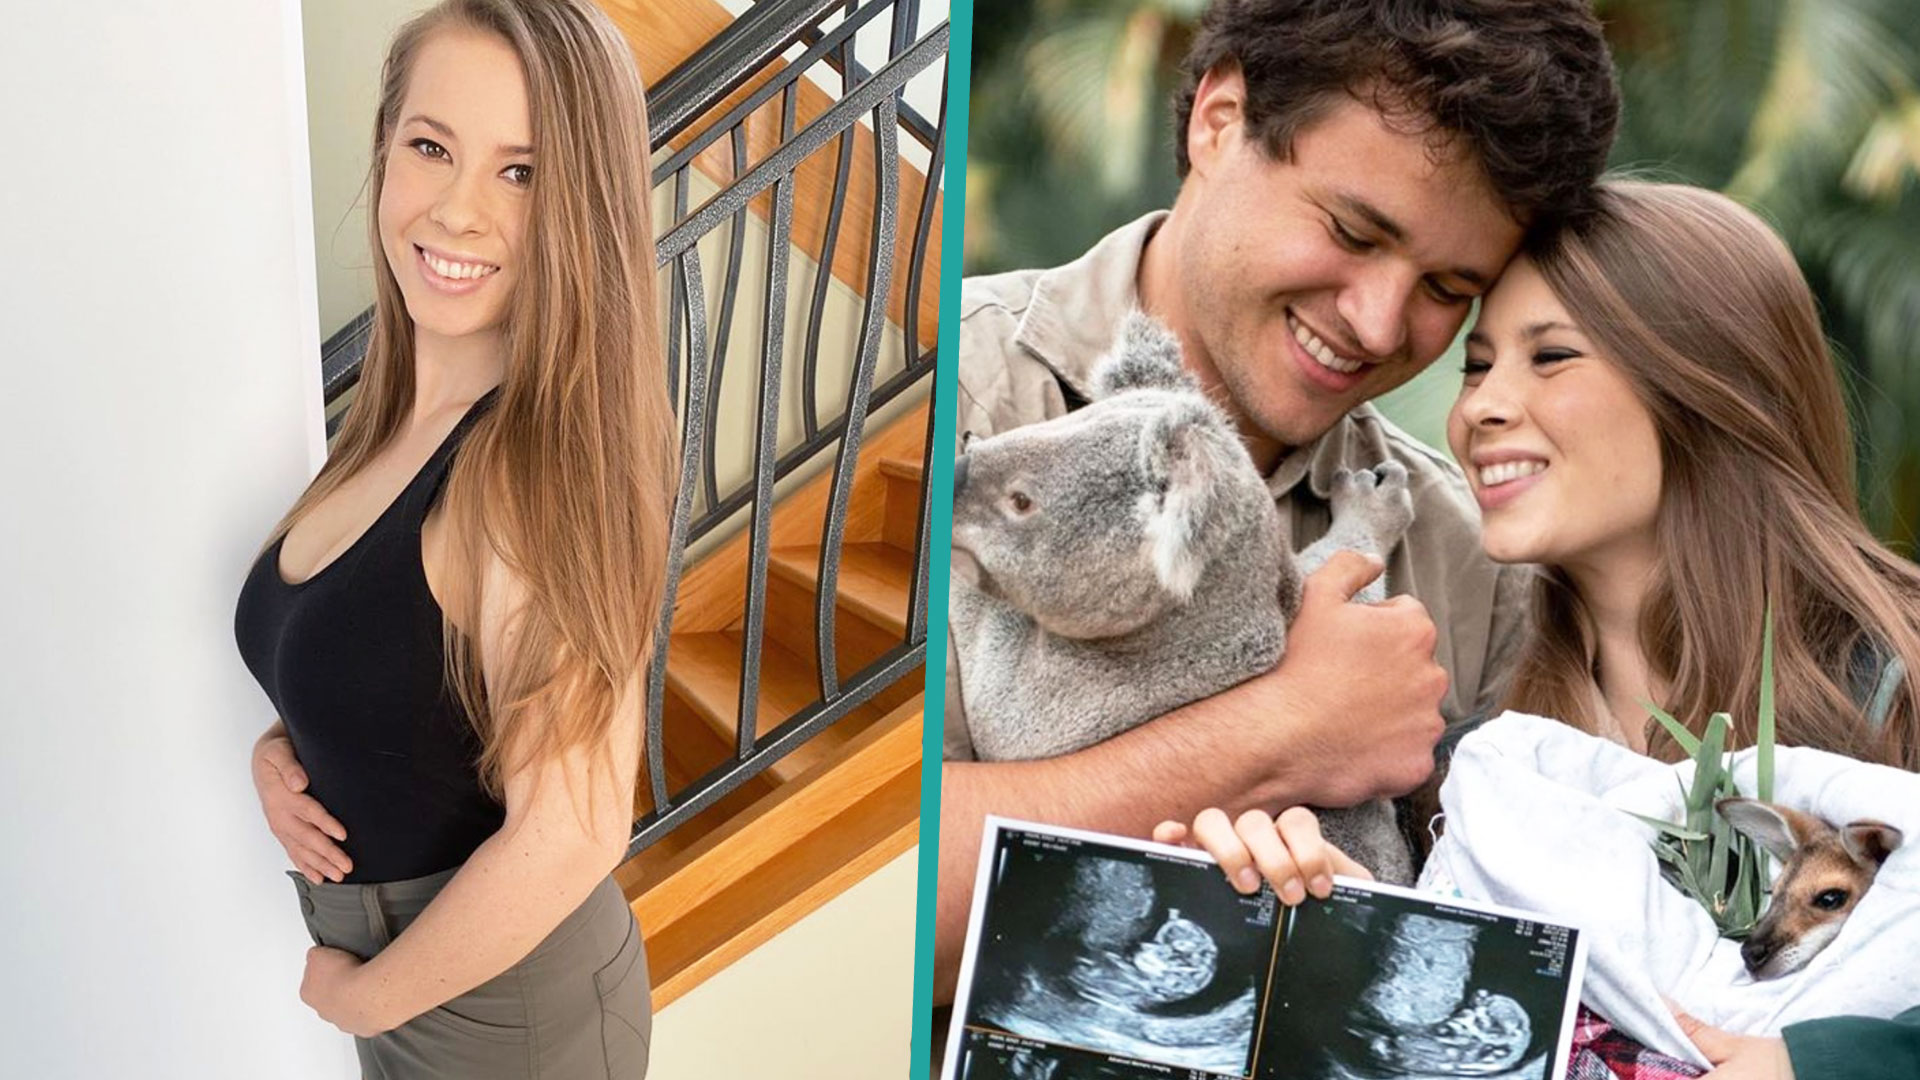 Bindi Irwin Shares a New Photo of Her Baby Bump""